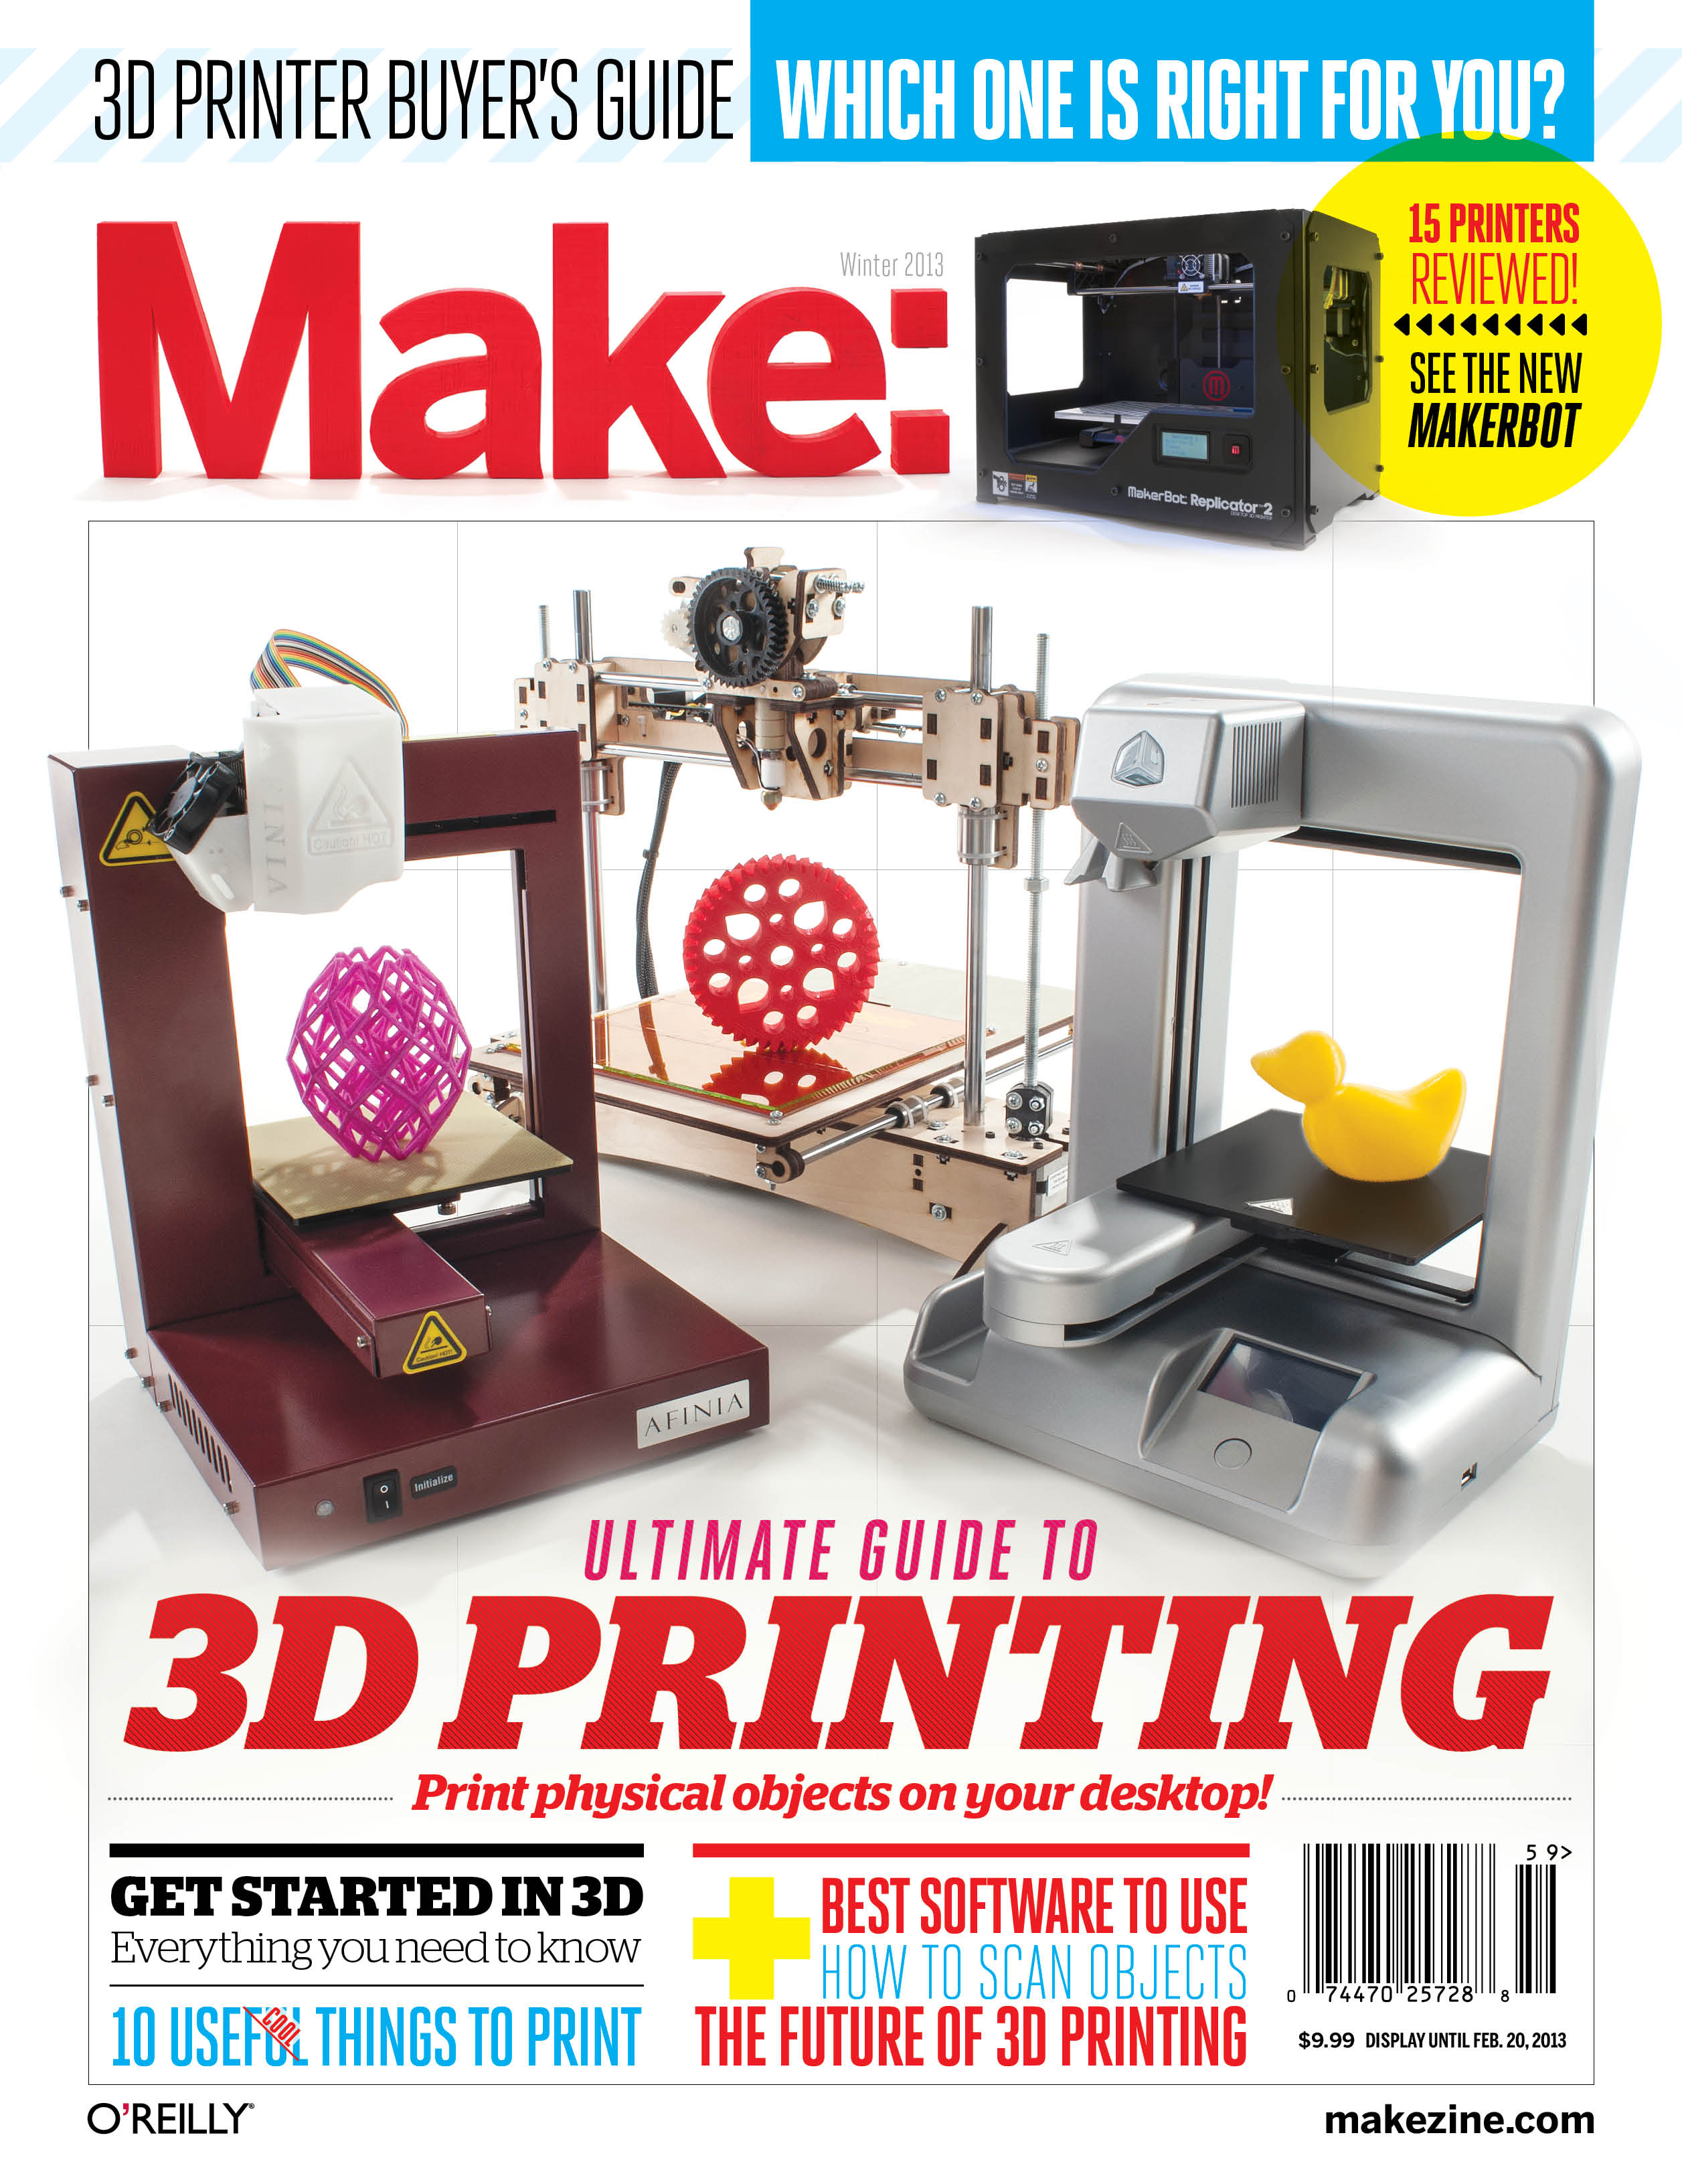 MAKE'S Ultimate Guide to 3D Printing: A Preview on Google+ Nov. 5